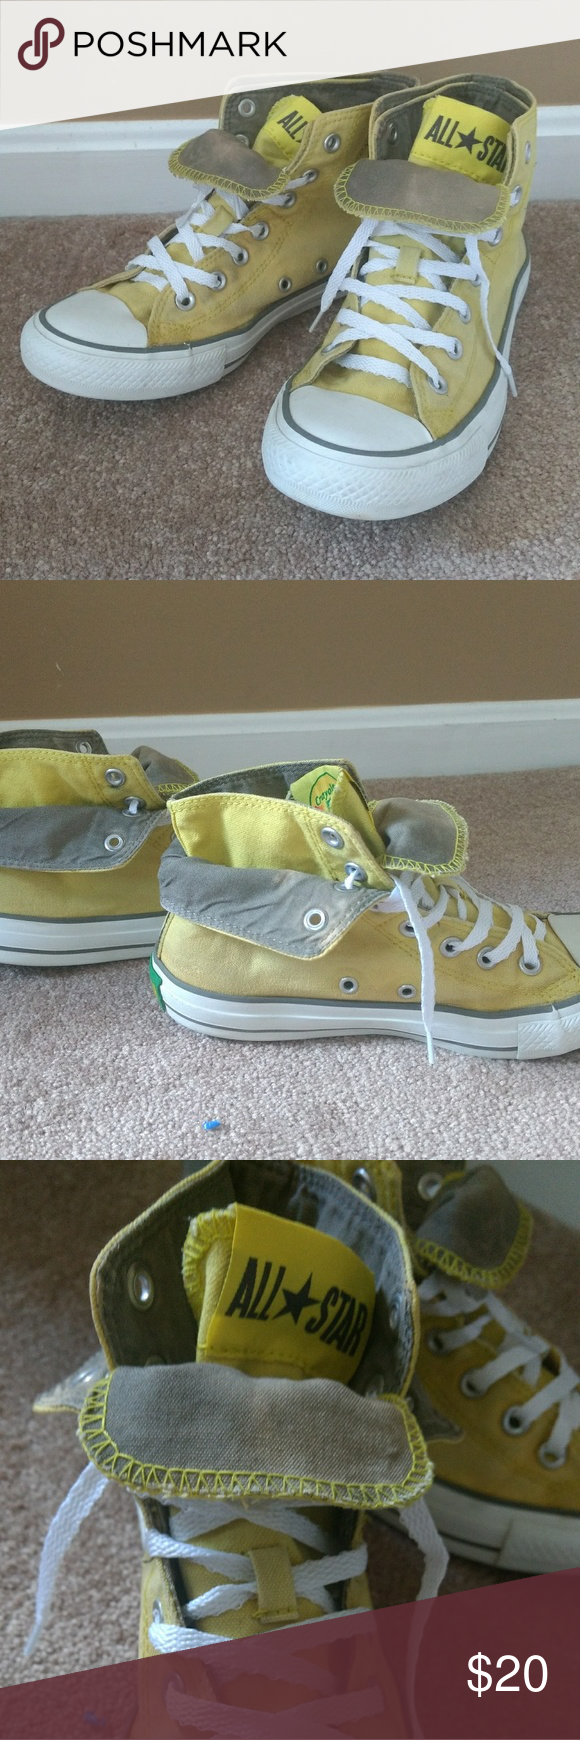 Converse Yellow Chuck Taylors Hi Tops Size 8 Size 6 Youth 8